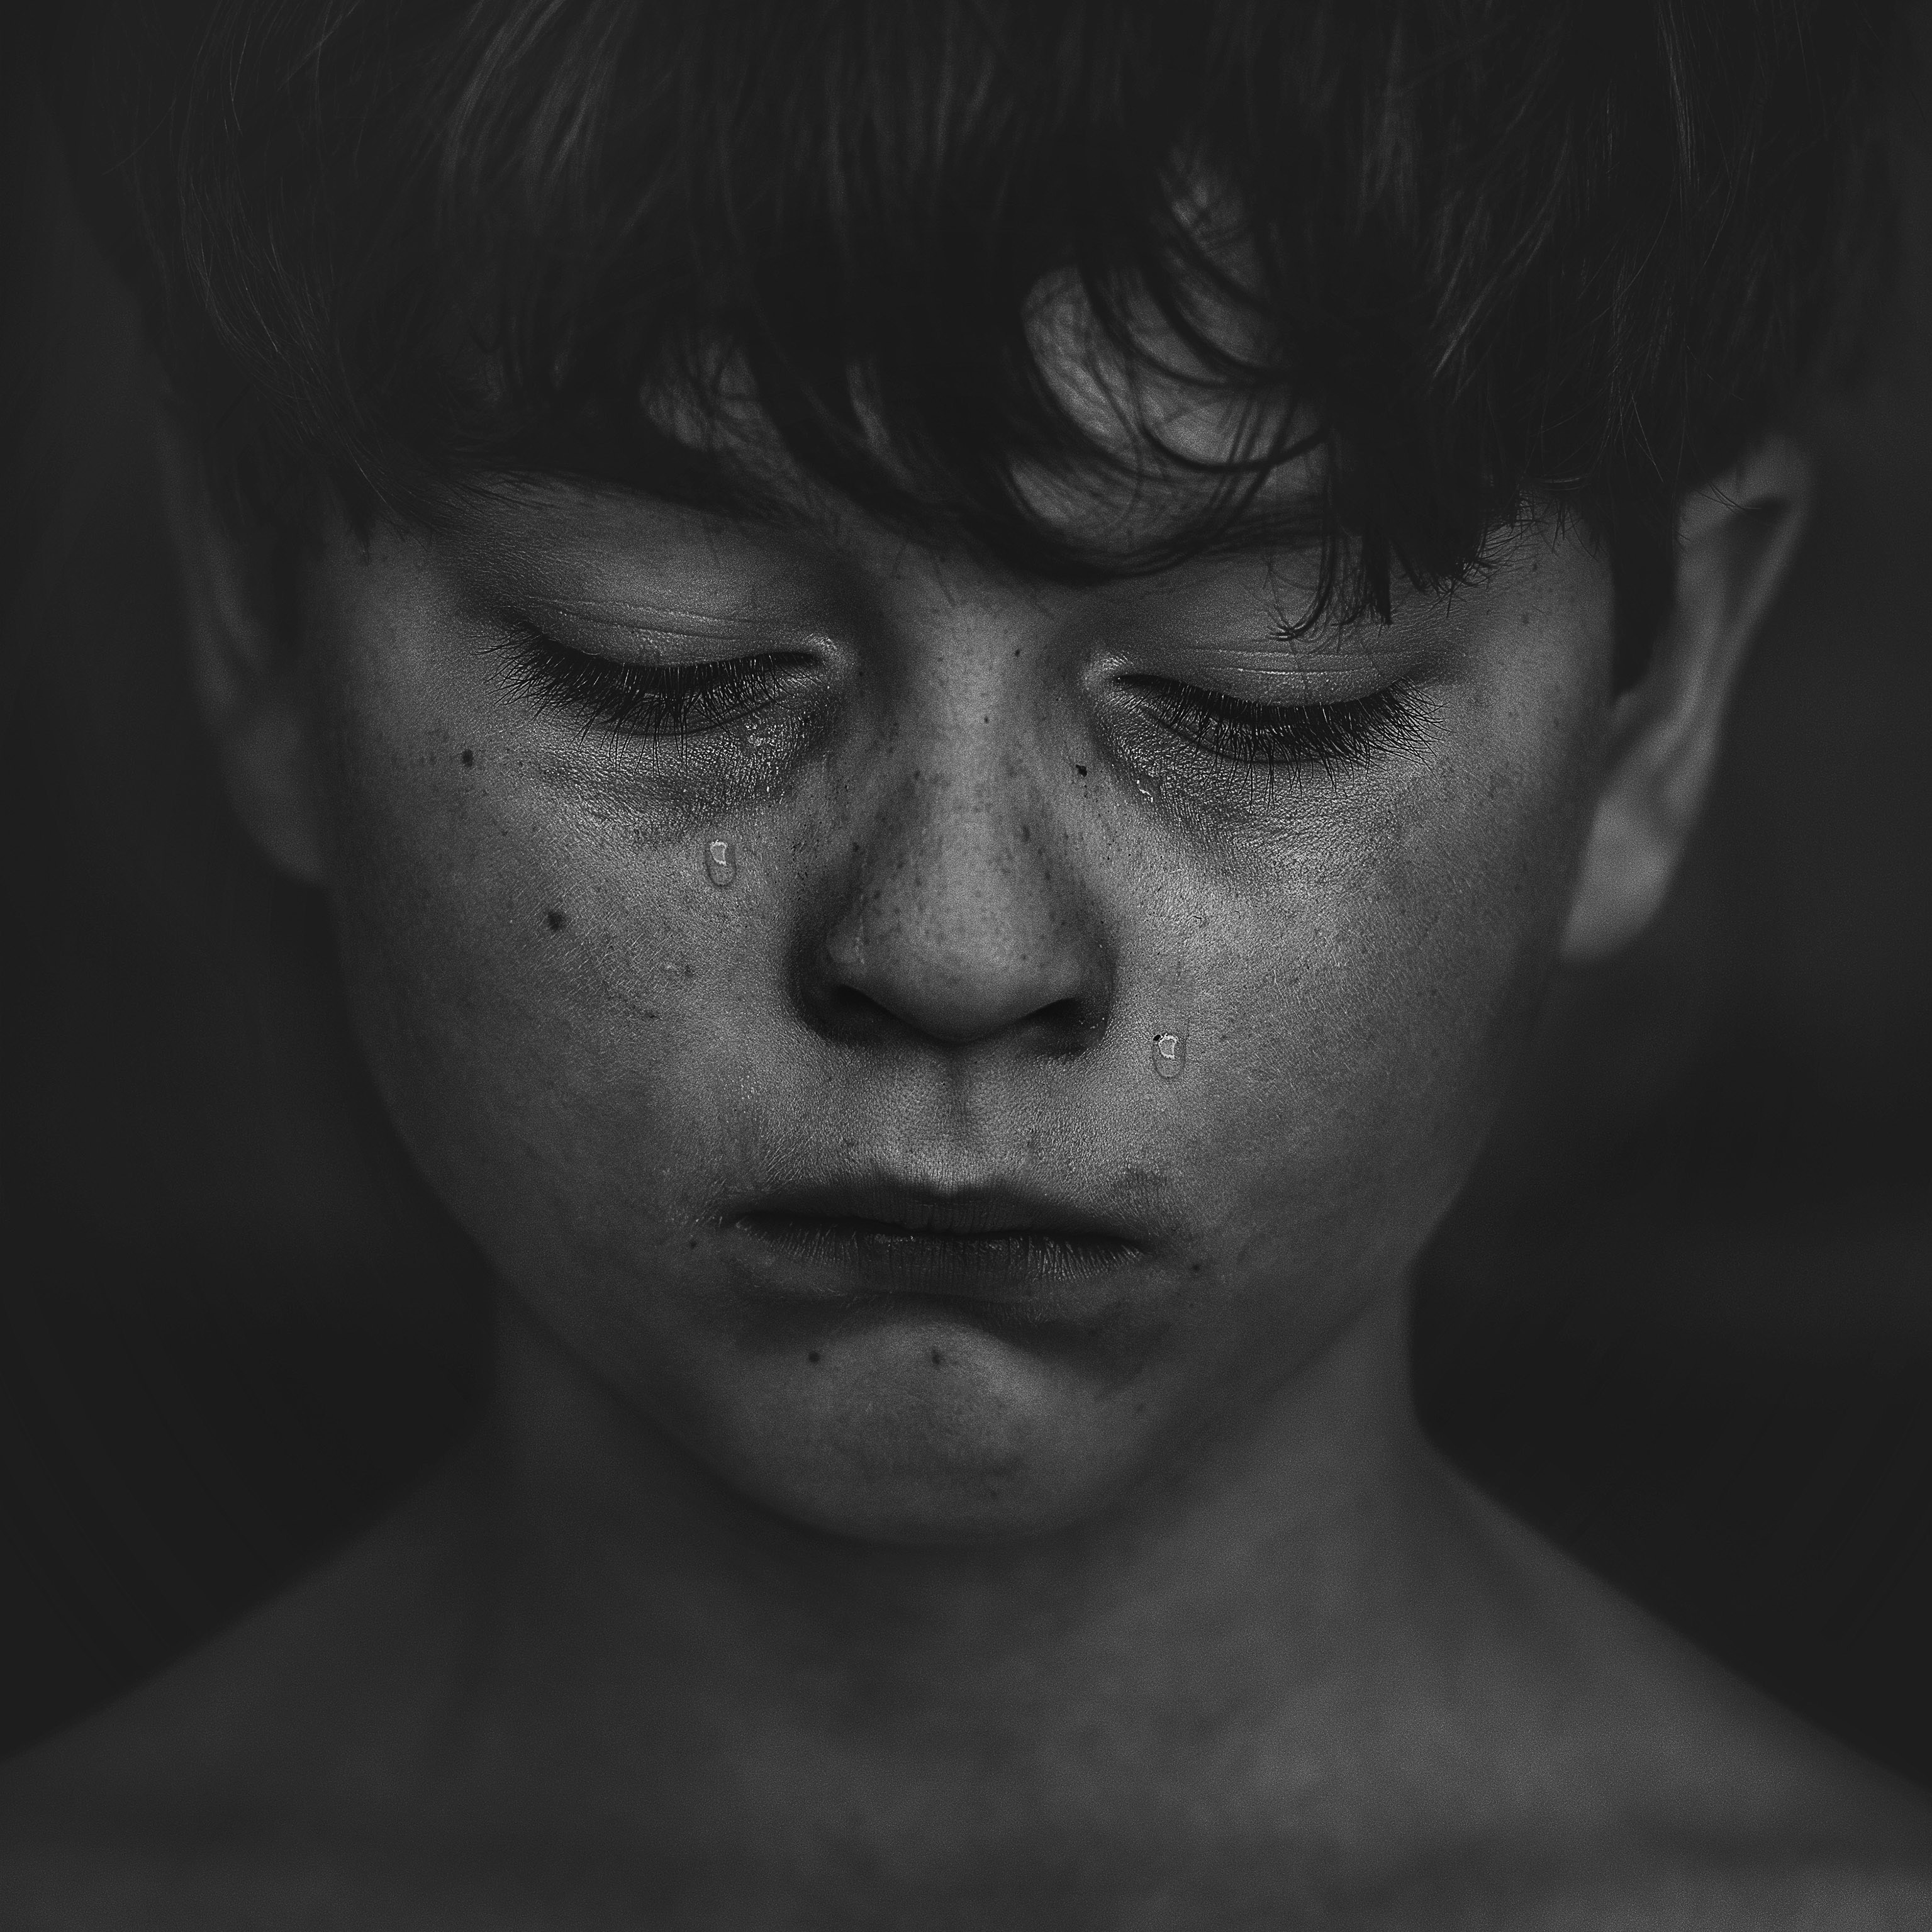 A boy crying learning to cope with depression